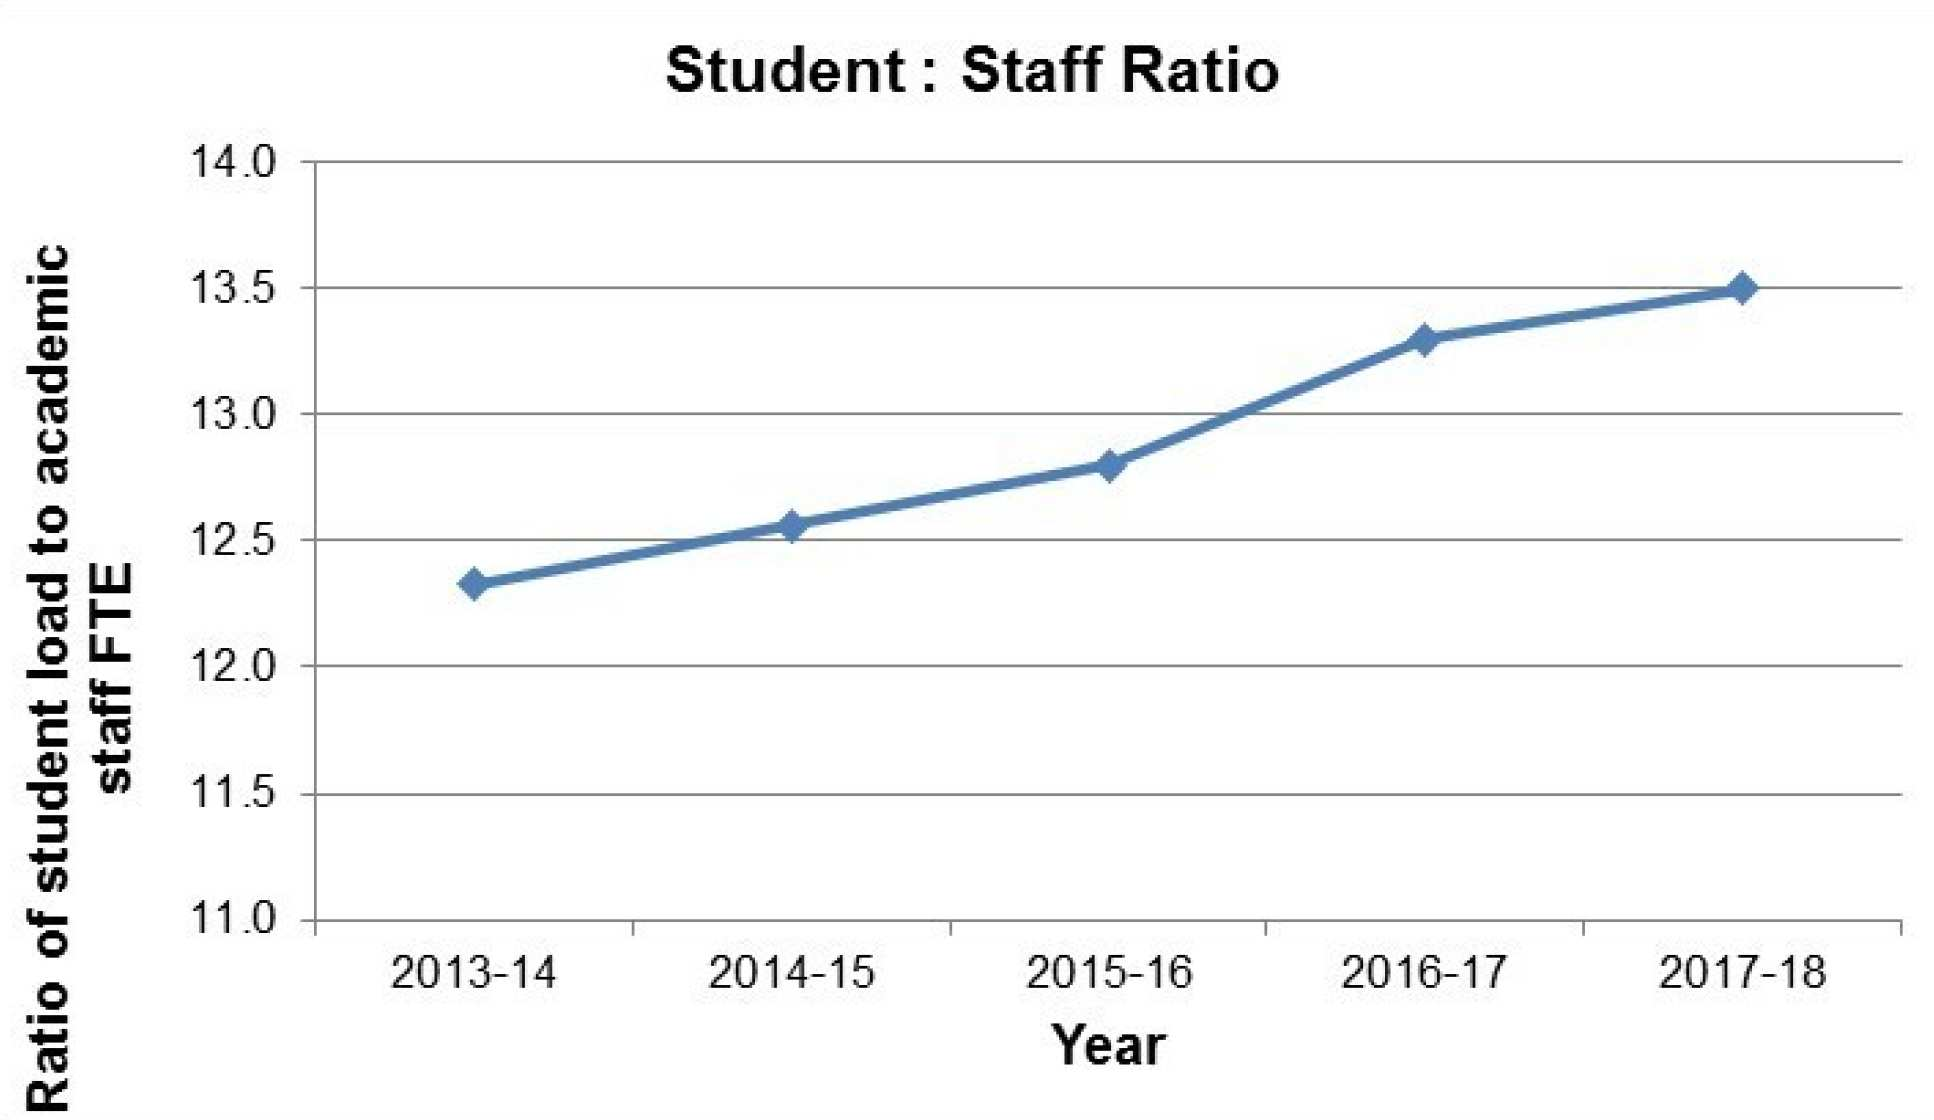 Student : Staff Ratio